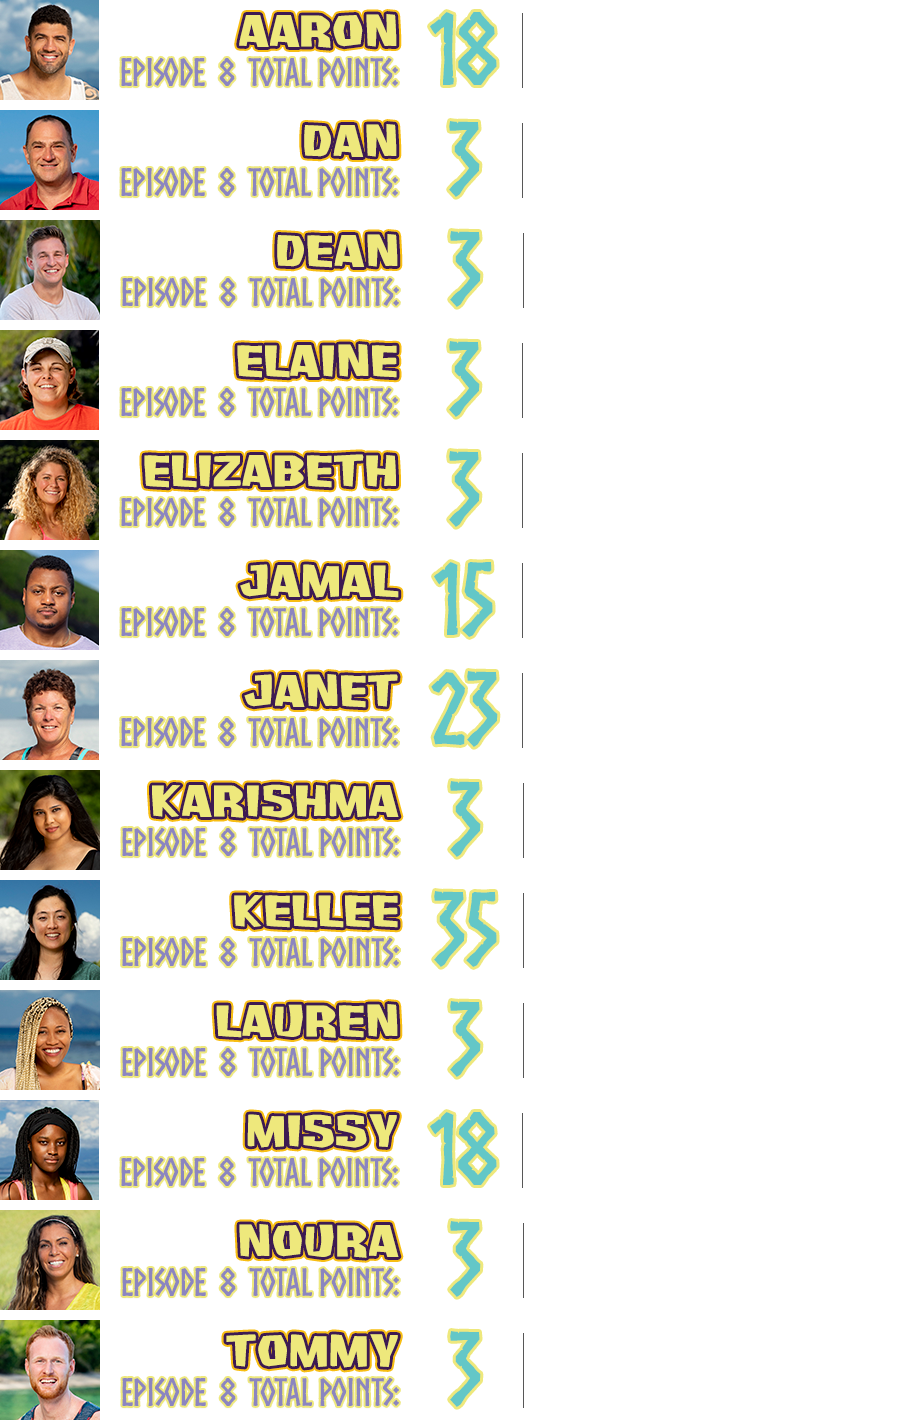 Aaron total points: 18, points breakdown: won individual immunity challenge +15, survived the week +3; Dan total points: 3, points breakdown: survived the week +3; Dean total points: 3, points breakdown: survived the week +3; Elaine total points: 3, points breakdown: survived the week +3; Elizabeth total points: 3, points breakdown: survived the week +3; Jamal total points: 15, points breakdown: went to Island of the Idols +5, torch snuffed due to blindside +10; Janet total points: 23, points breakdown: cried on camera +5, found a hidden immunity idol +10, played an idol on herself +5, survived the week +3; Karishma total points: 3, points breakdown: survived the week: 3; Kellee total points: 35, points breakdown: cried on camera +5, found hidden immunity idols +10, torch snuffed due to blindside +10, voted out while in possession of an idol +10; Lauren total points: 3, points breakdown: survived the week +3; Missy total points: 18, points breakdown: won individual immunity challenge +15, survived the week +3; Noura total points: 3, points breakdown: survived the week +3; Tommy total points: 3, points breakdown: survived the week +3